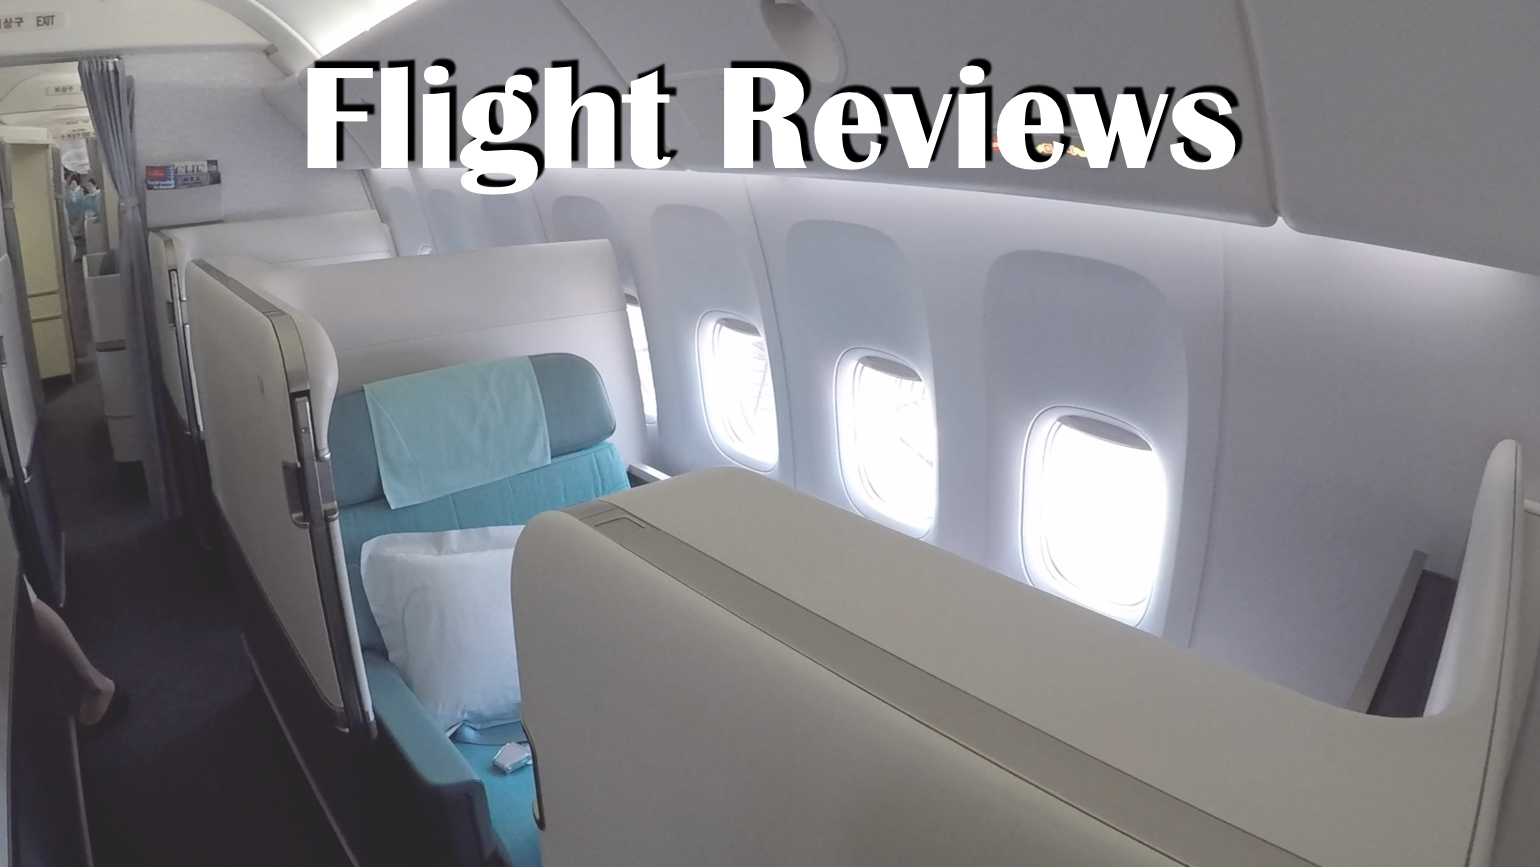 Flight Reviews.png